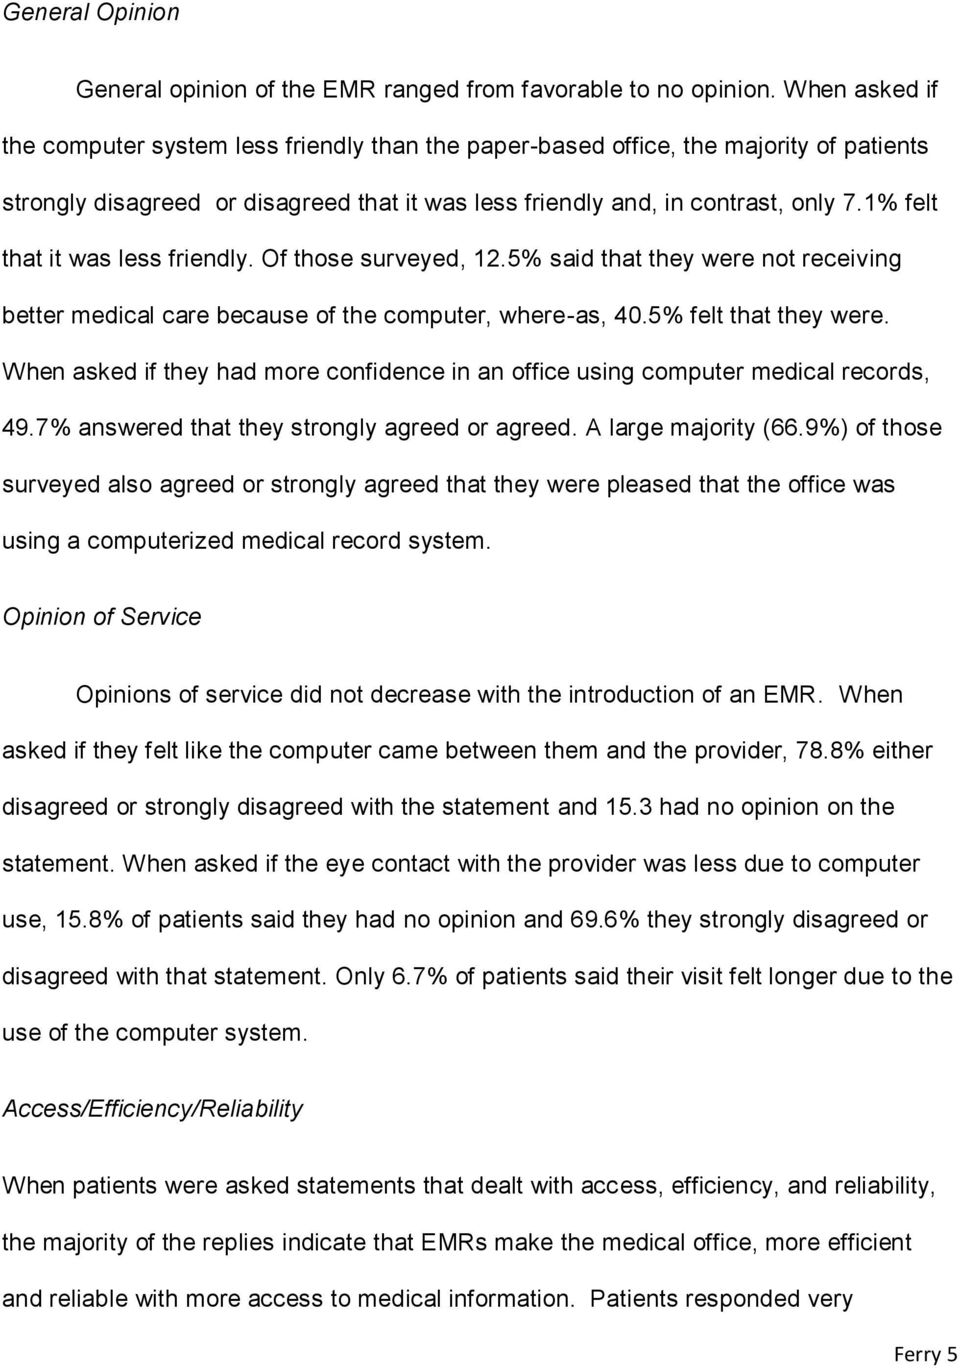 1% felt that it was less friendly. Of those surveyed, 12.5% said that they were not receiving better medical care because of the computer, where-as, 40.5% felt that they were.